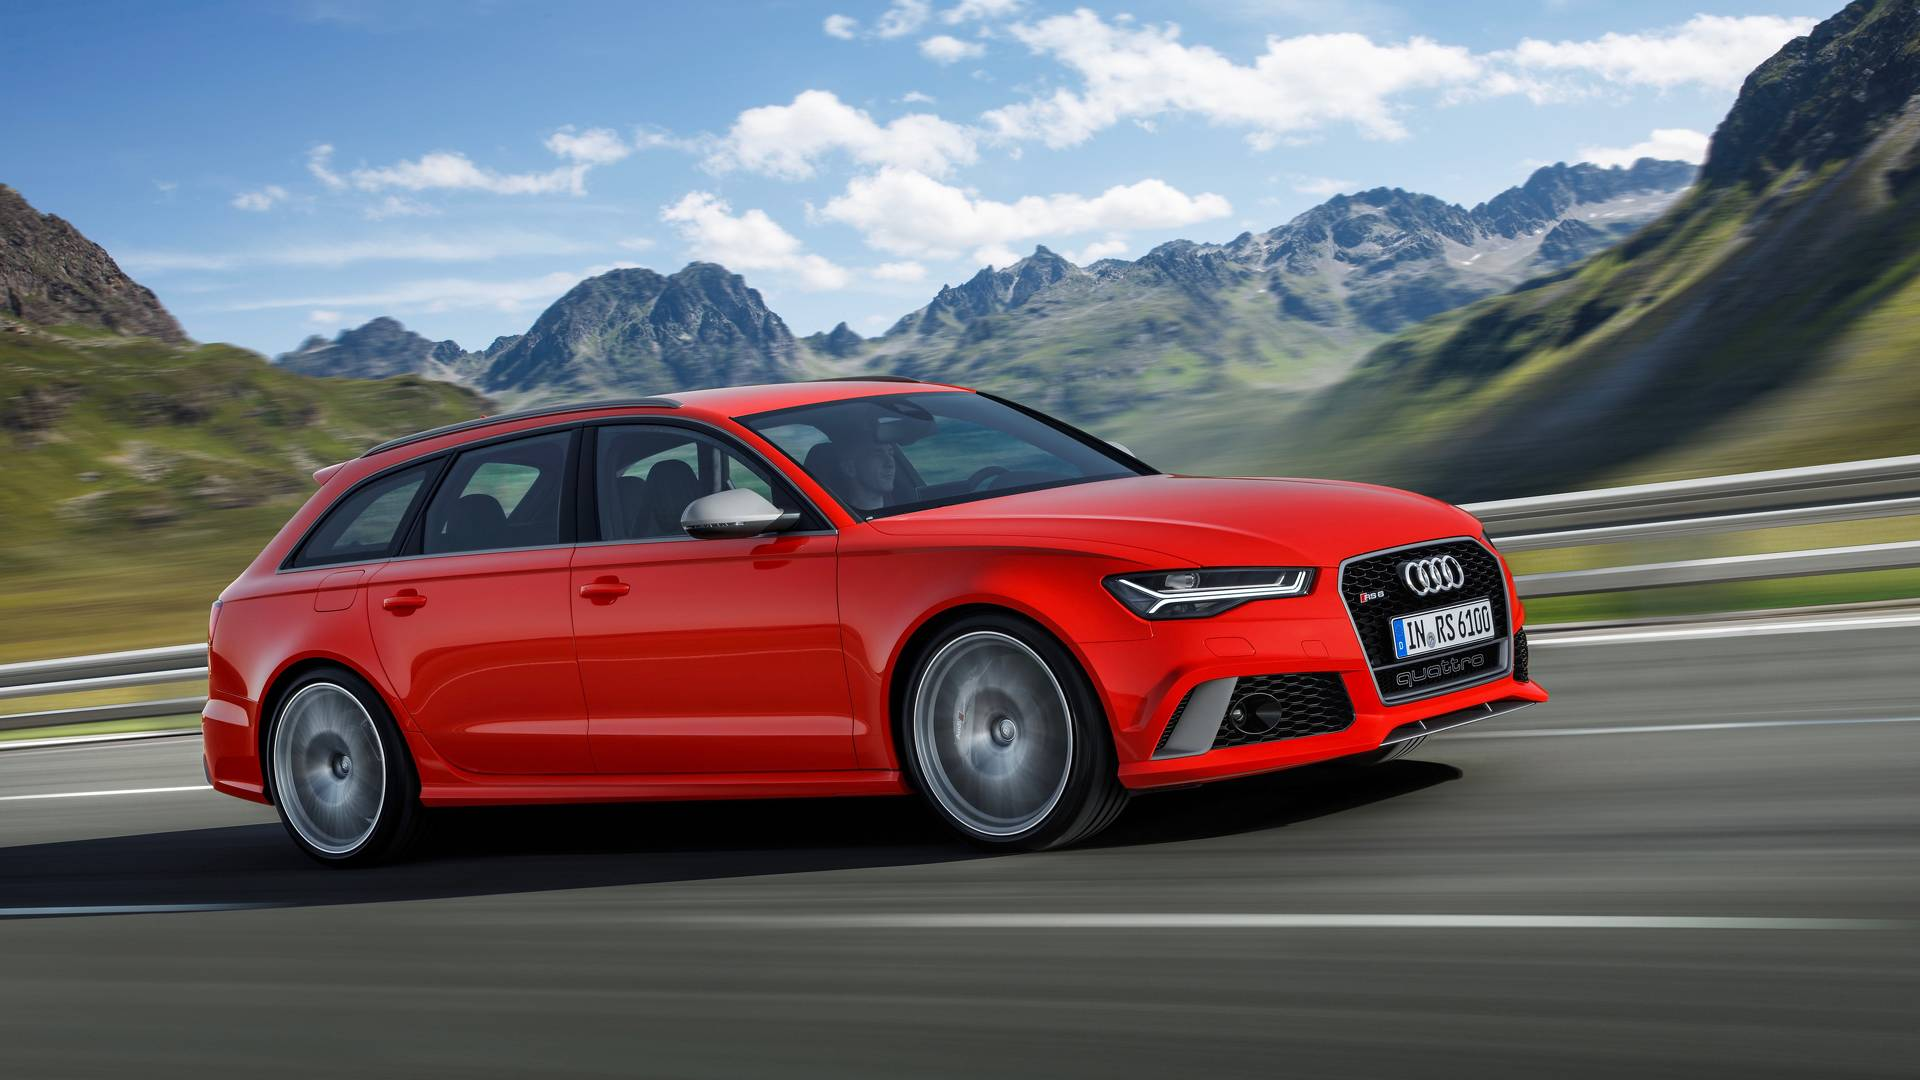 The Most Stylish Performance Estates The Most Stylish Performance Estates new images